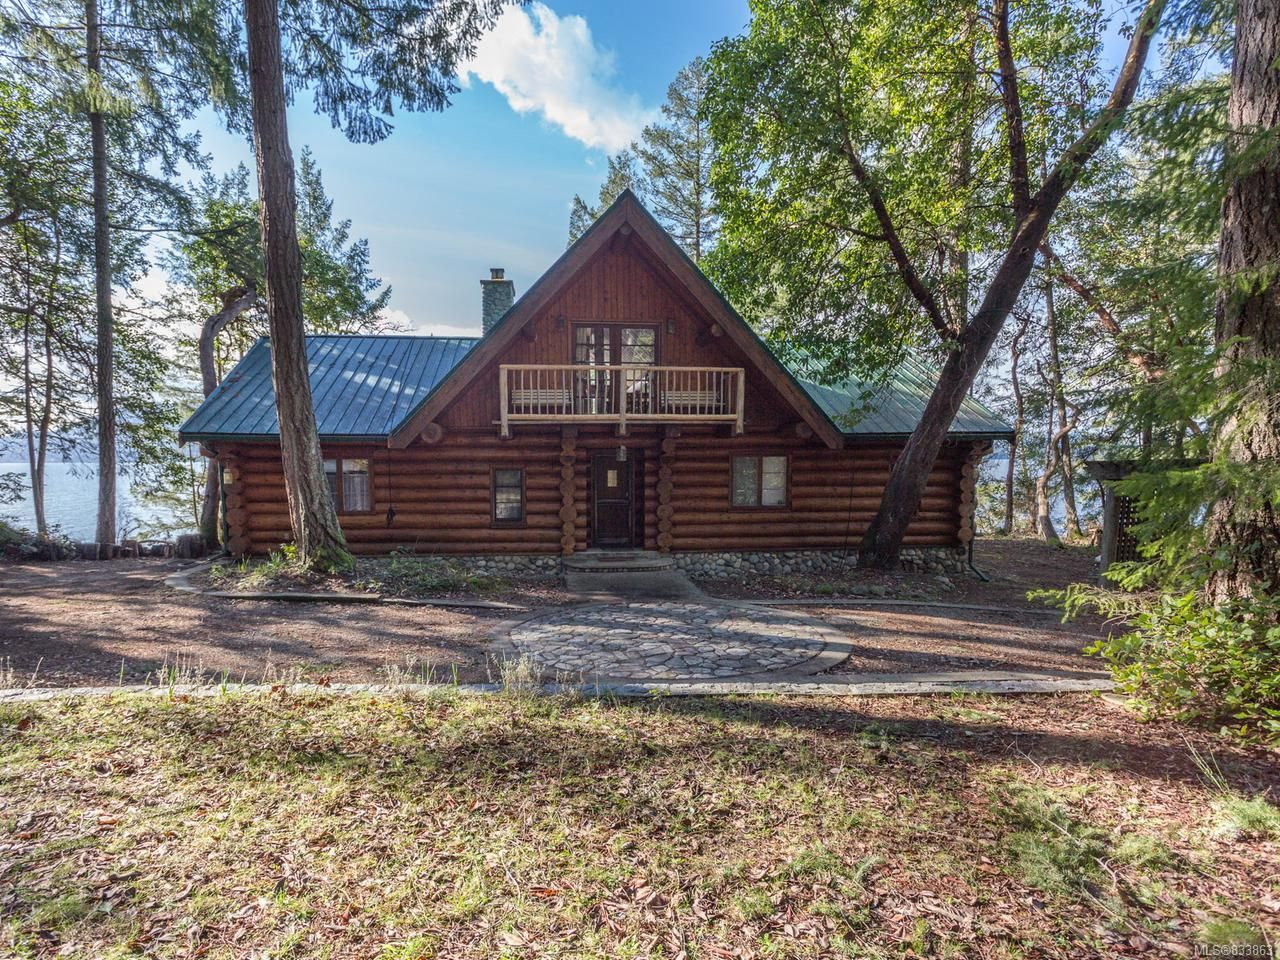 Photo 13: Photos: 255 Forbes Dr in THETIS ISLAND: Isl Thetis Island House for sale (Islands)  : MLS®# 833863